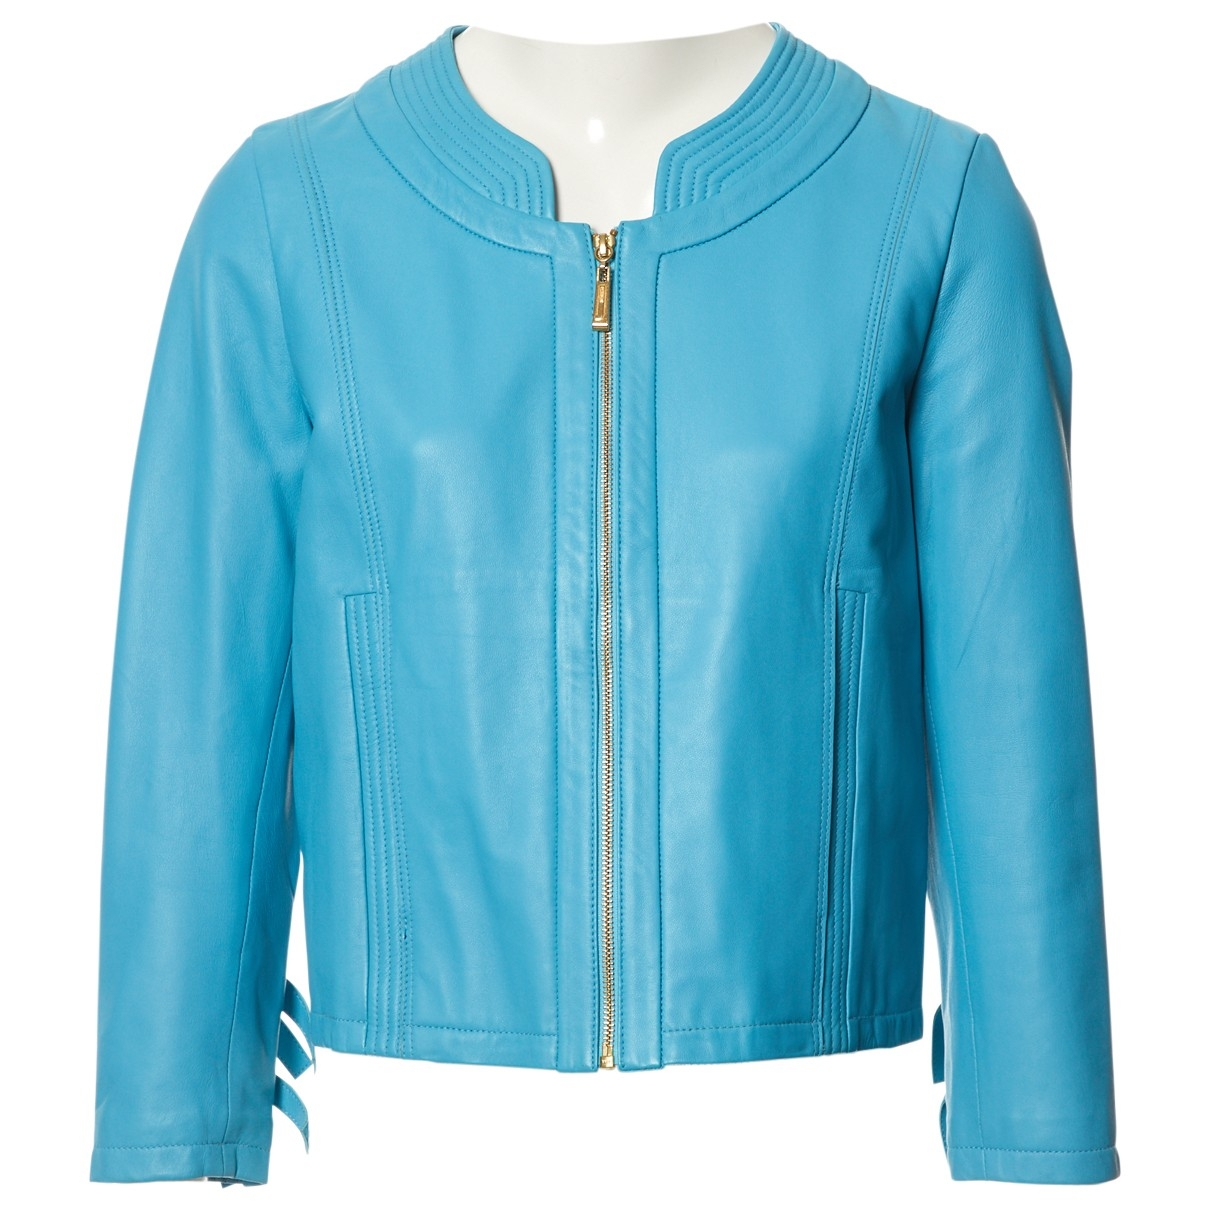 Just Cavalli \N Blue Leather jacket for Women 44 IT